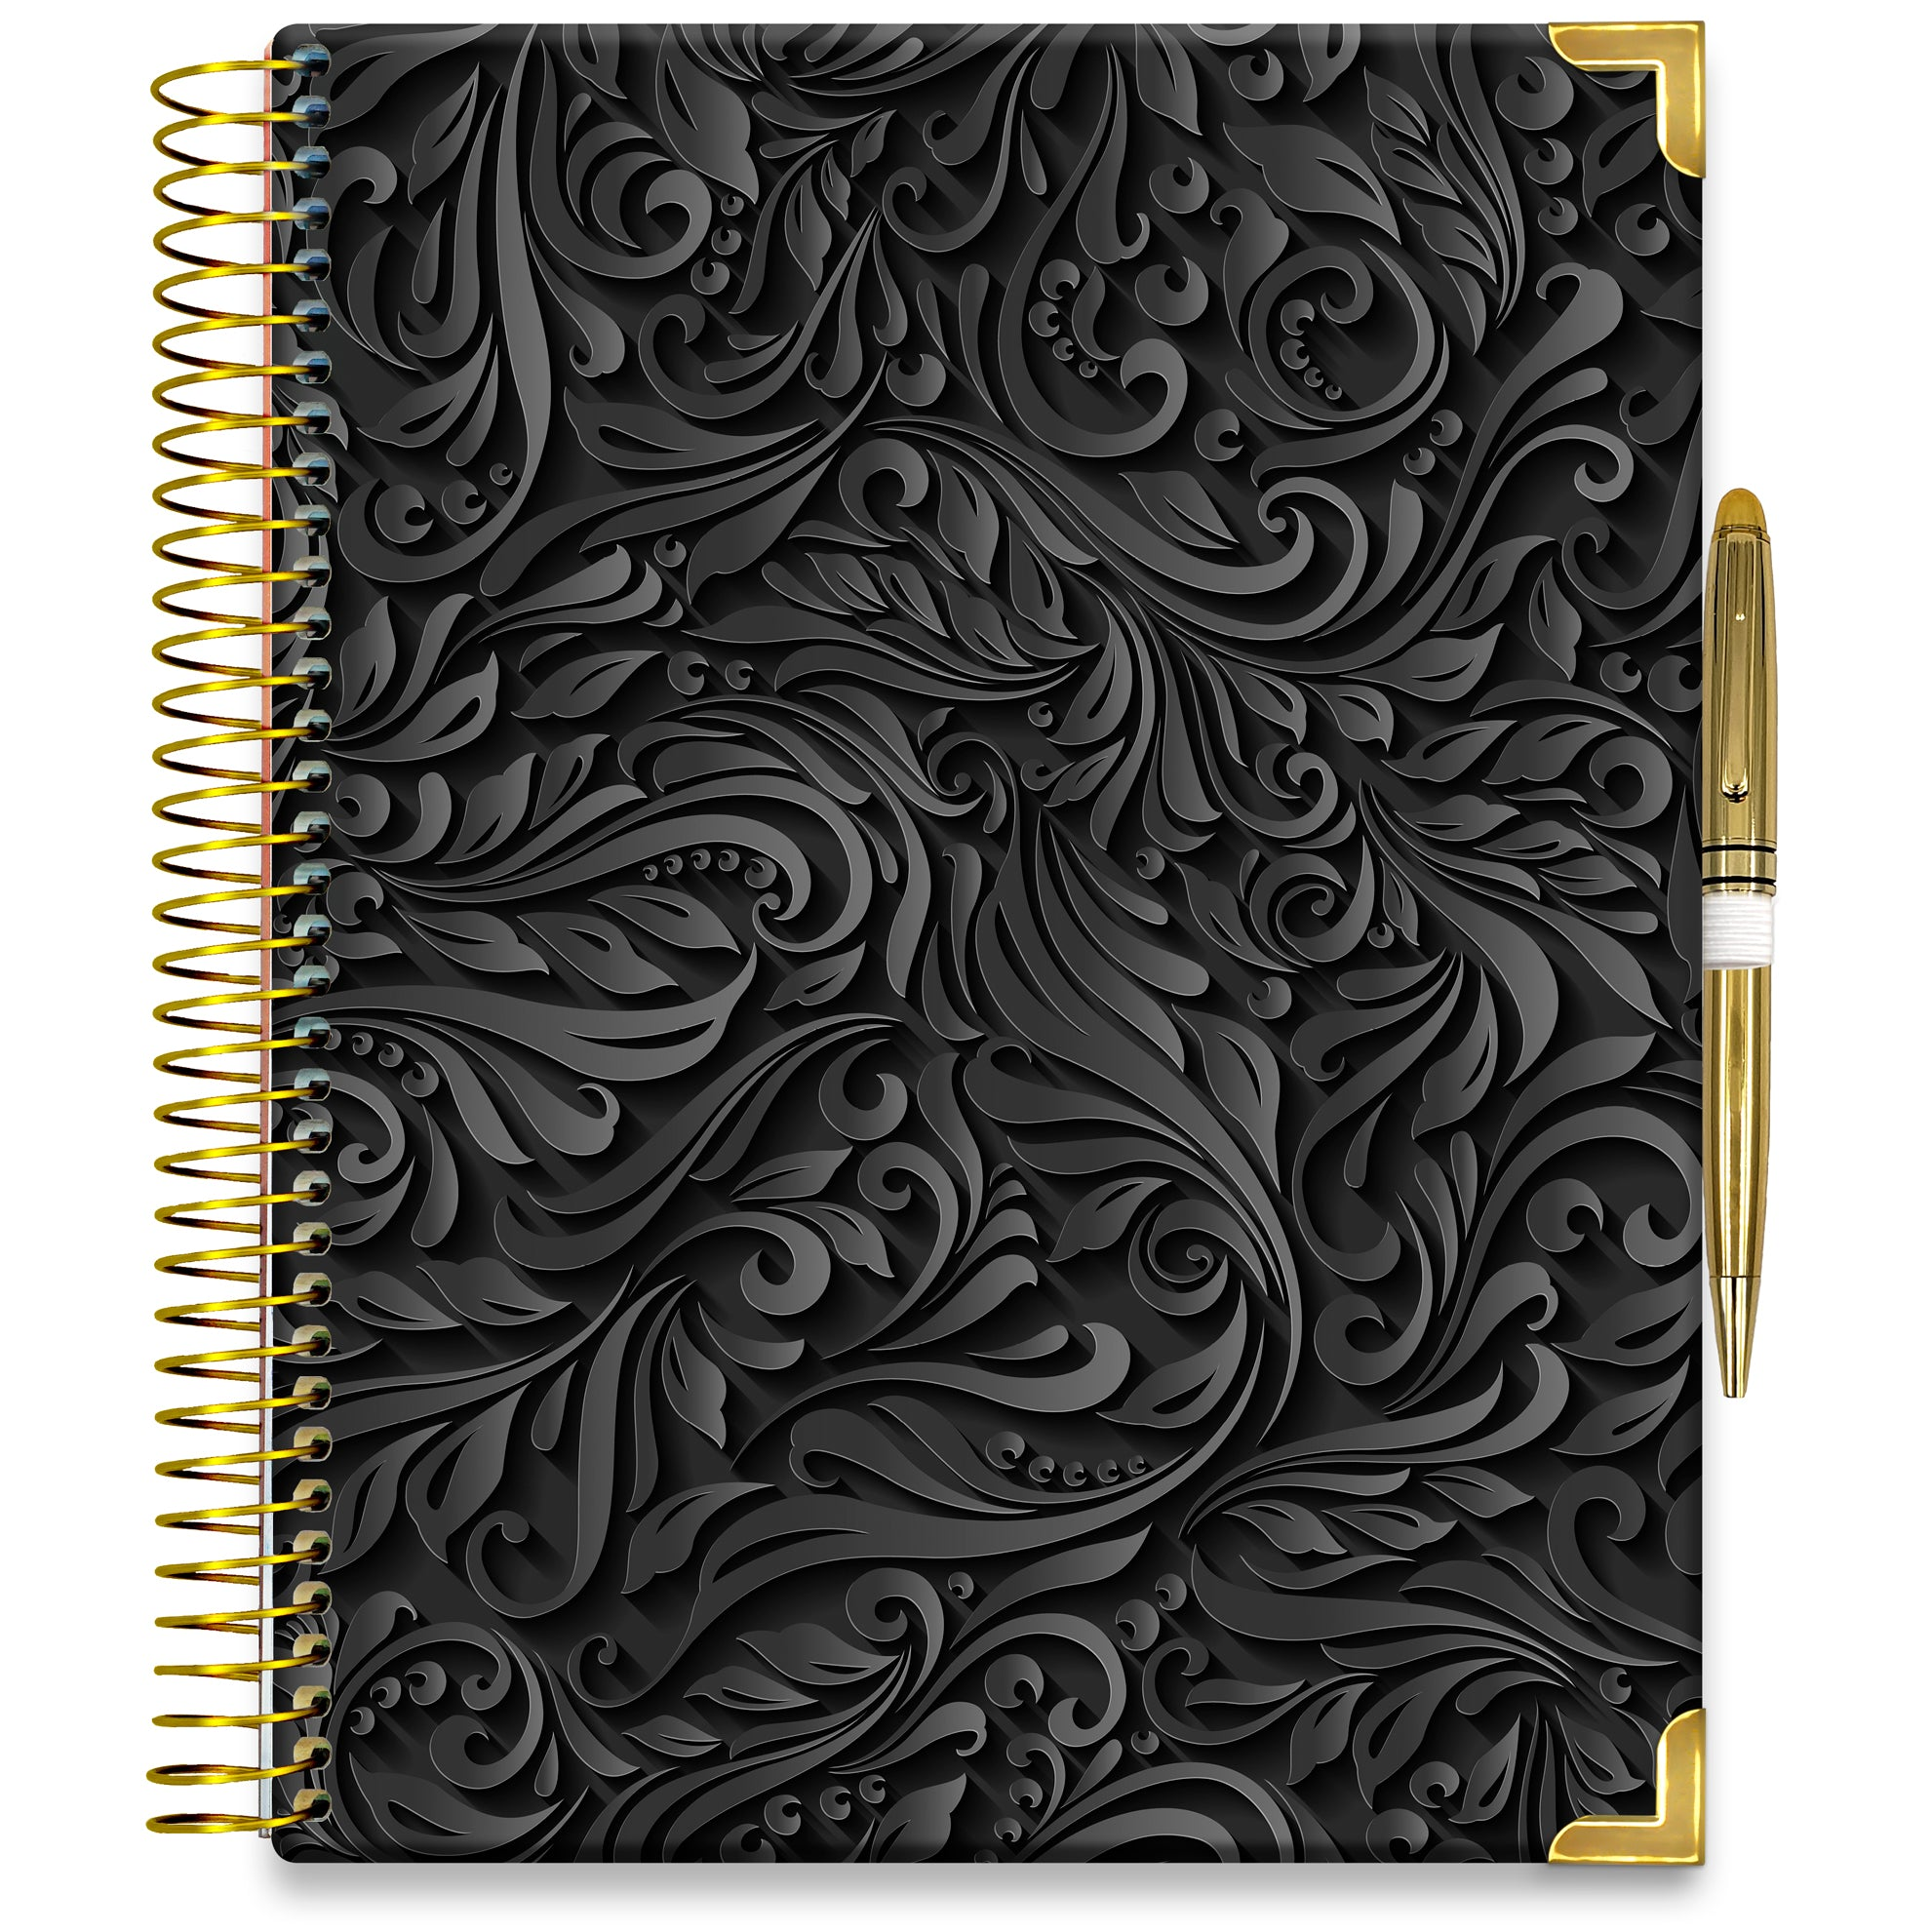 PRE-ORDER: APRIL 2021-2022 Planner - 15M Academic Year - Pro-Edition - 8.5x11 Hardcover - Black Floral Cover